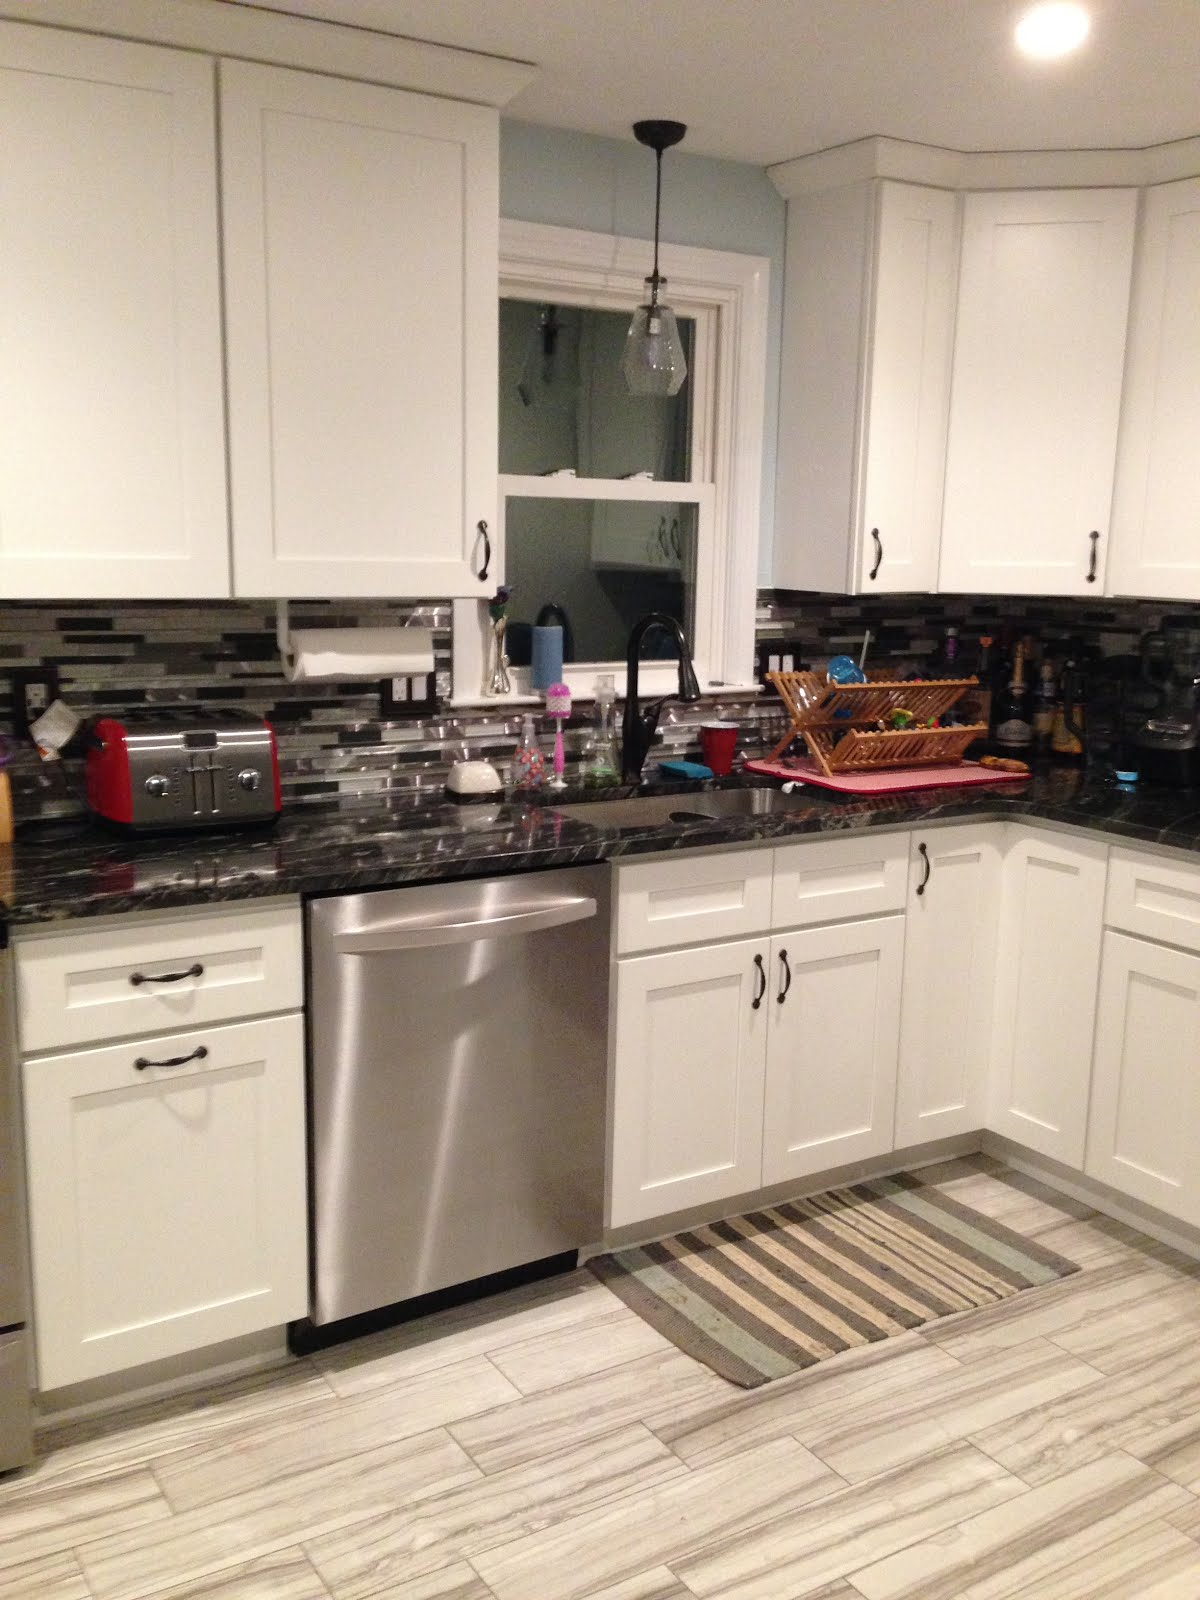 updated kitchen with white cabinets, black countertops, and stainless steel appliances